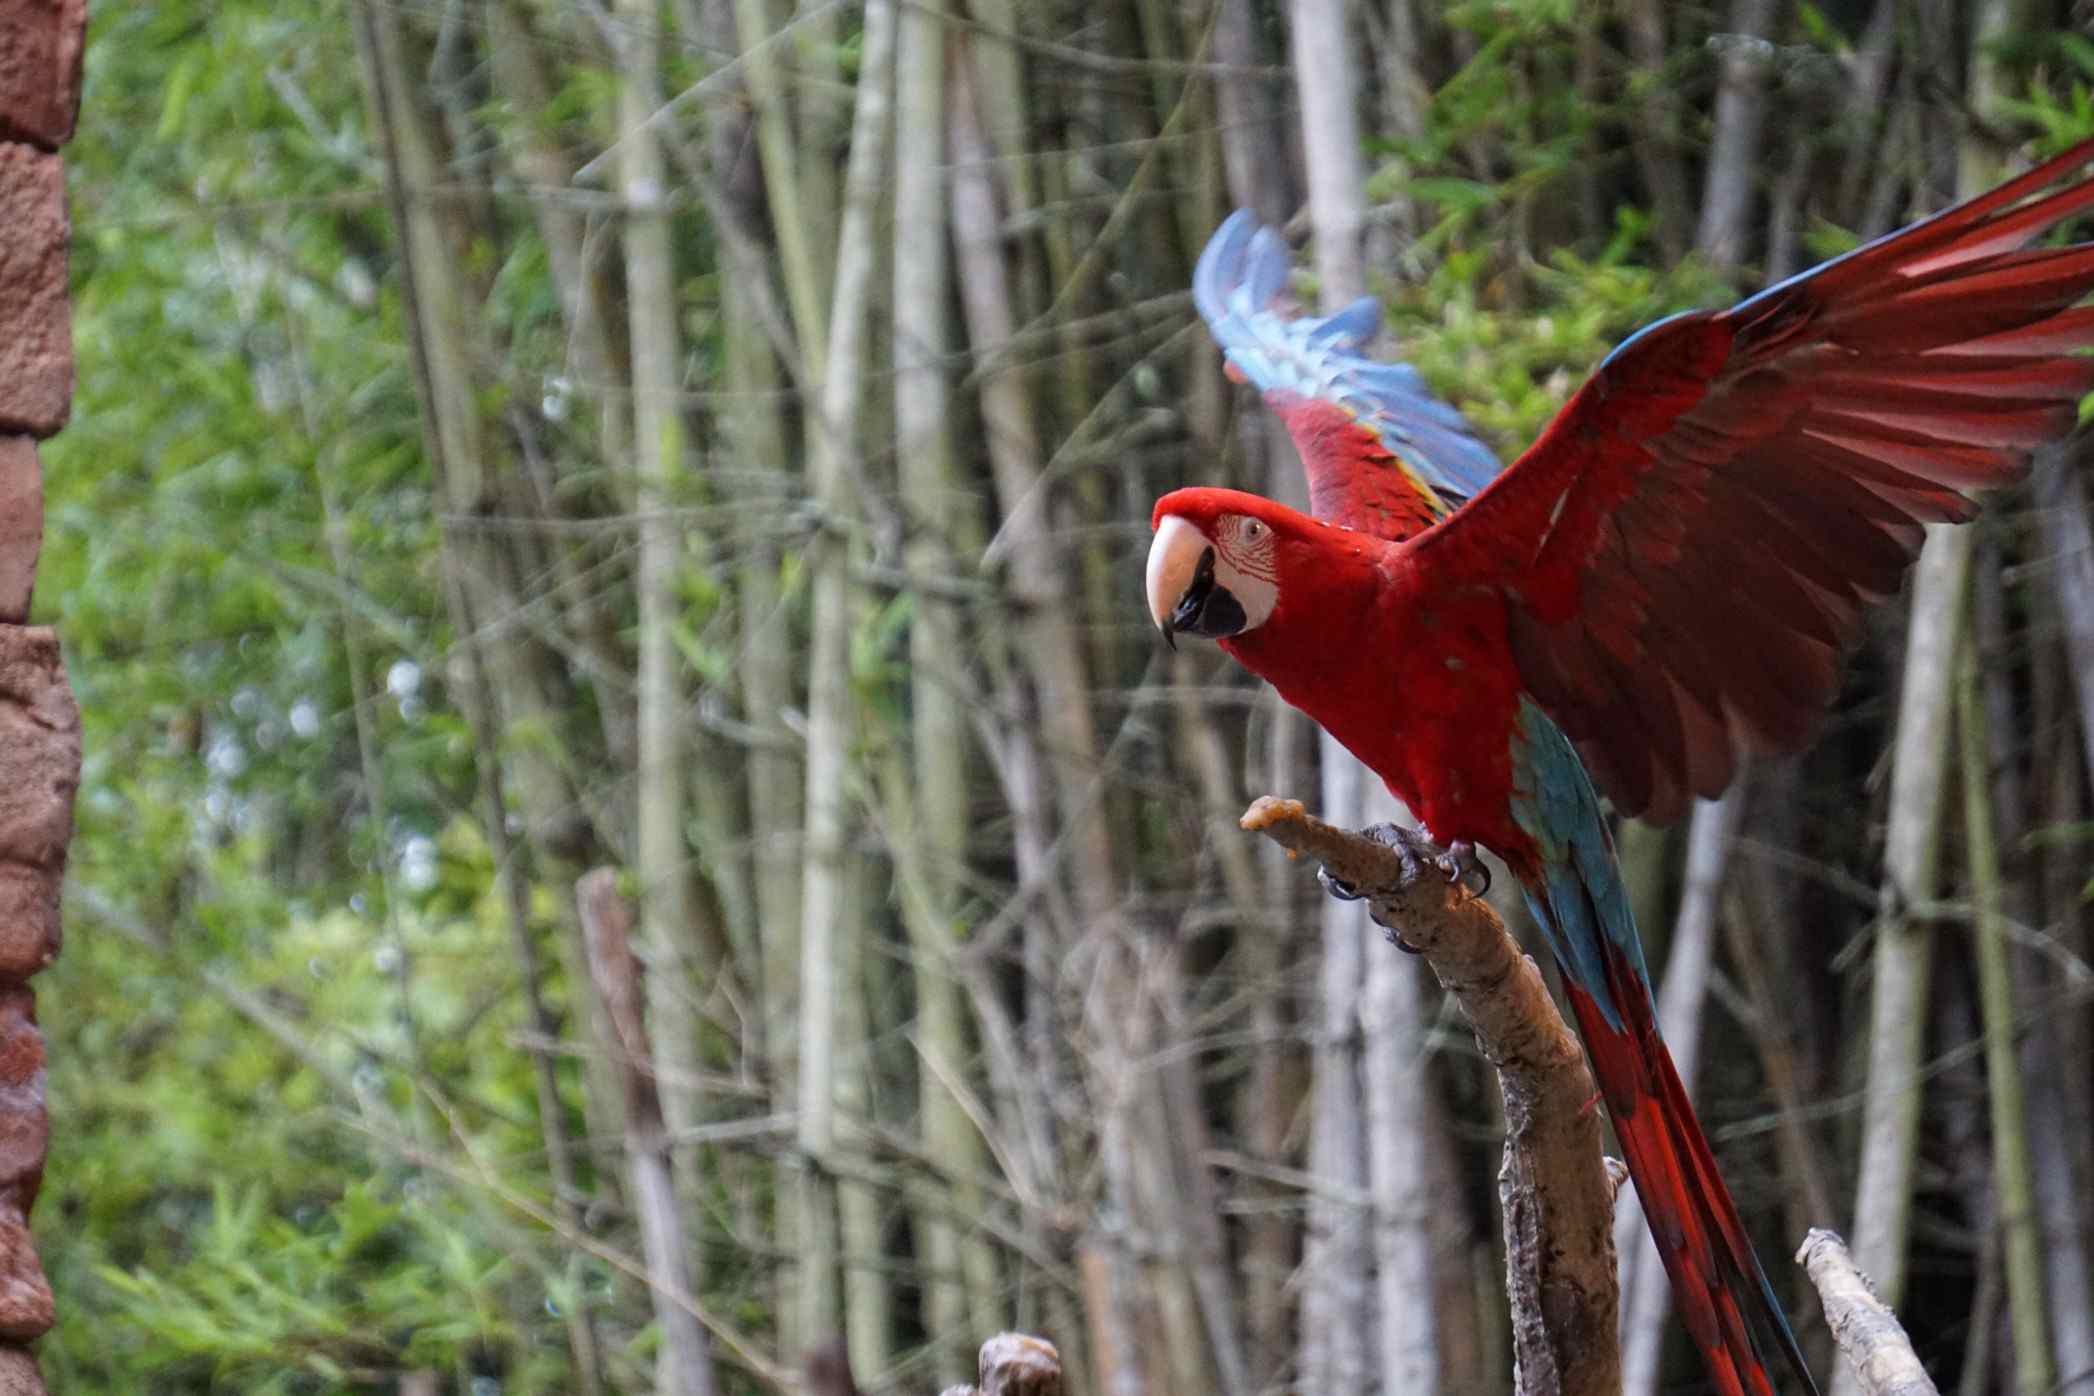 Parrot flapping wings